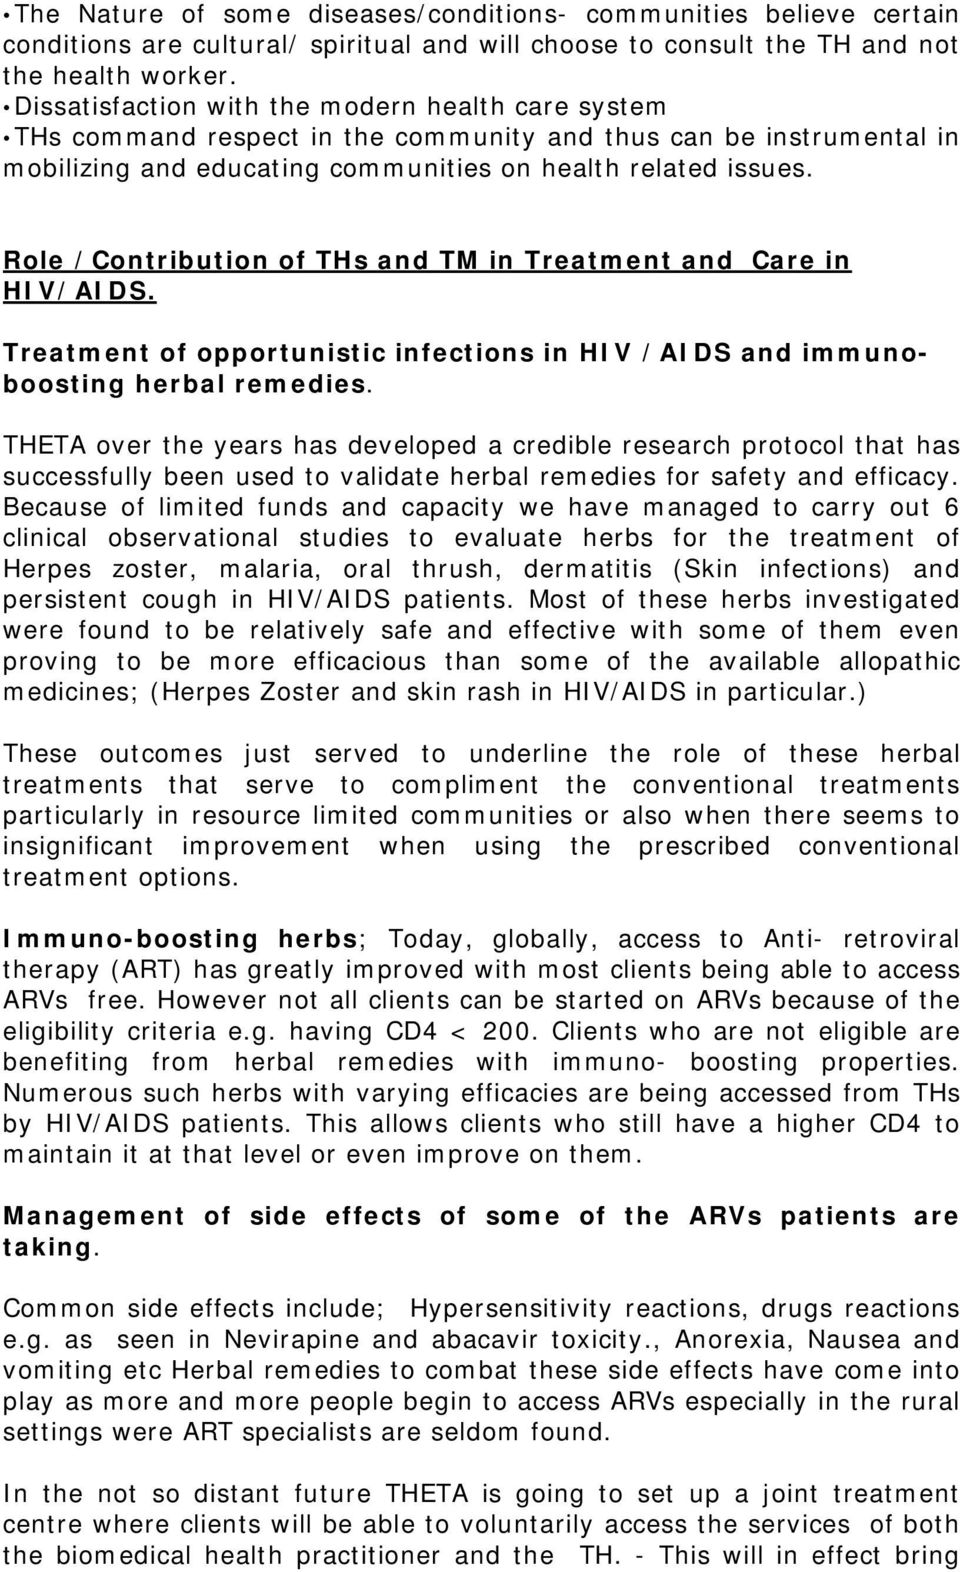 Role /Contribution of THs and TM in Treatment and Care in HIV/AIDS. Treatment of opportunistic infections in HIV /AIDS and immunoboosting herbal remedies.